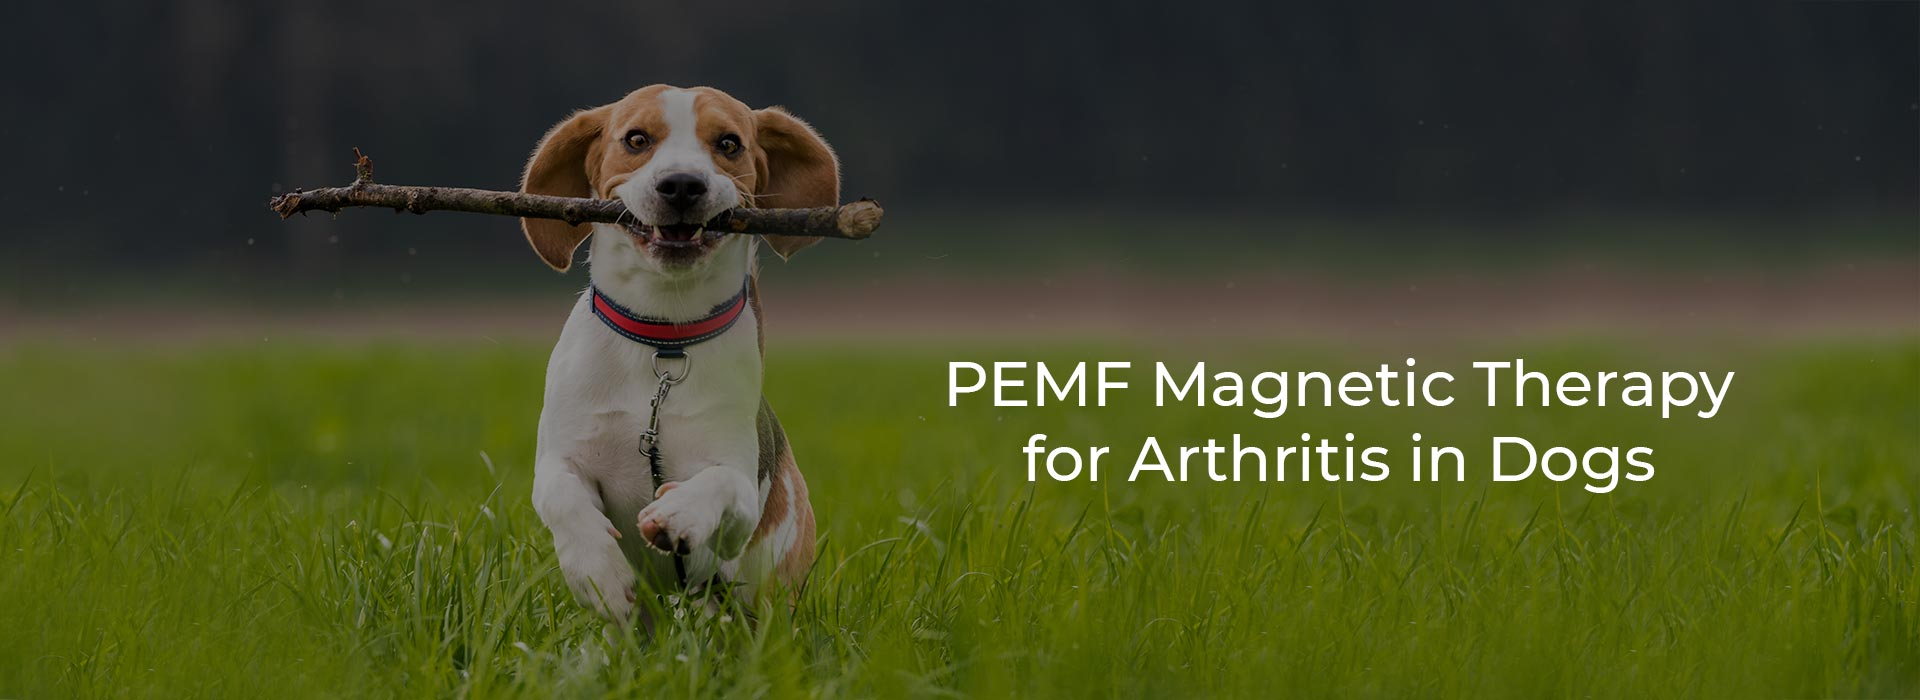 PEMF Magnetic Therapy for Arthritis in Dogs